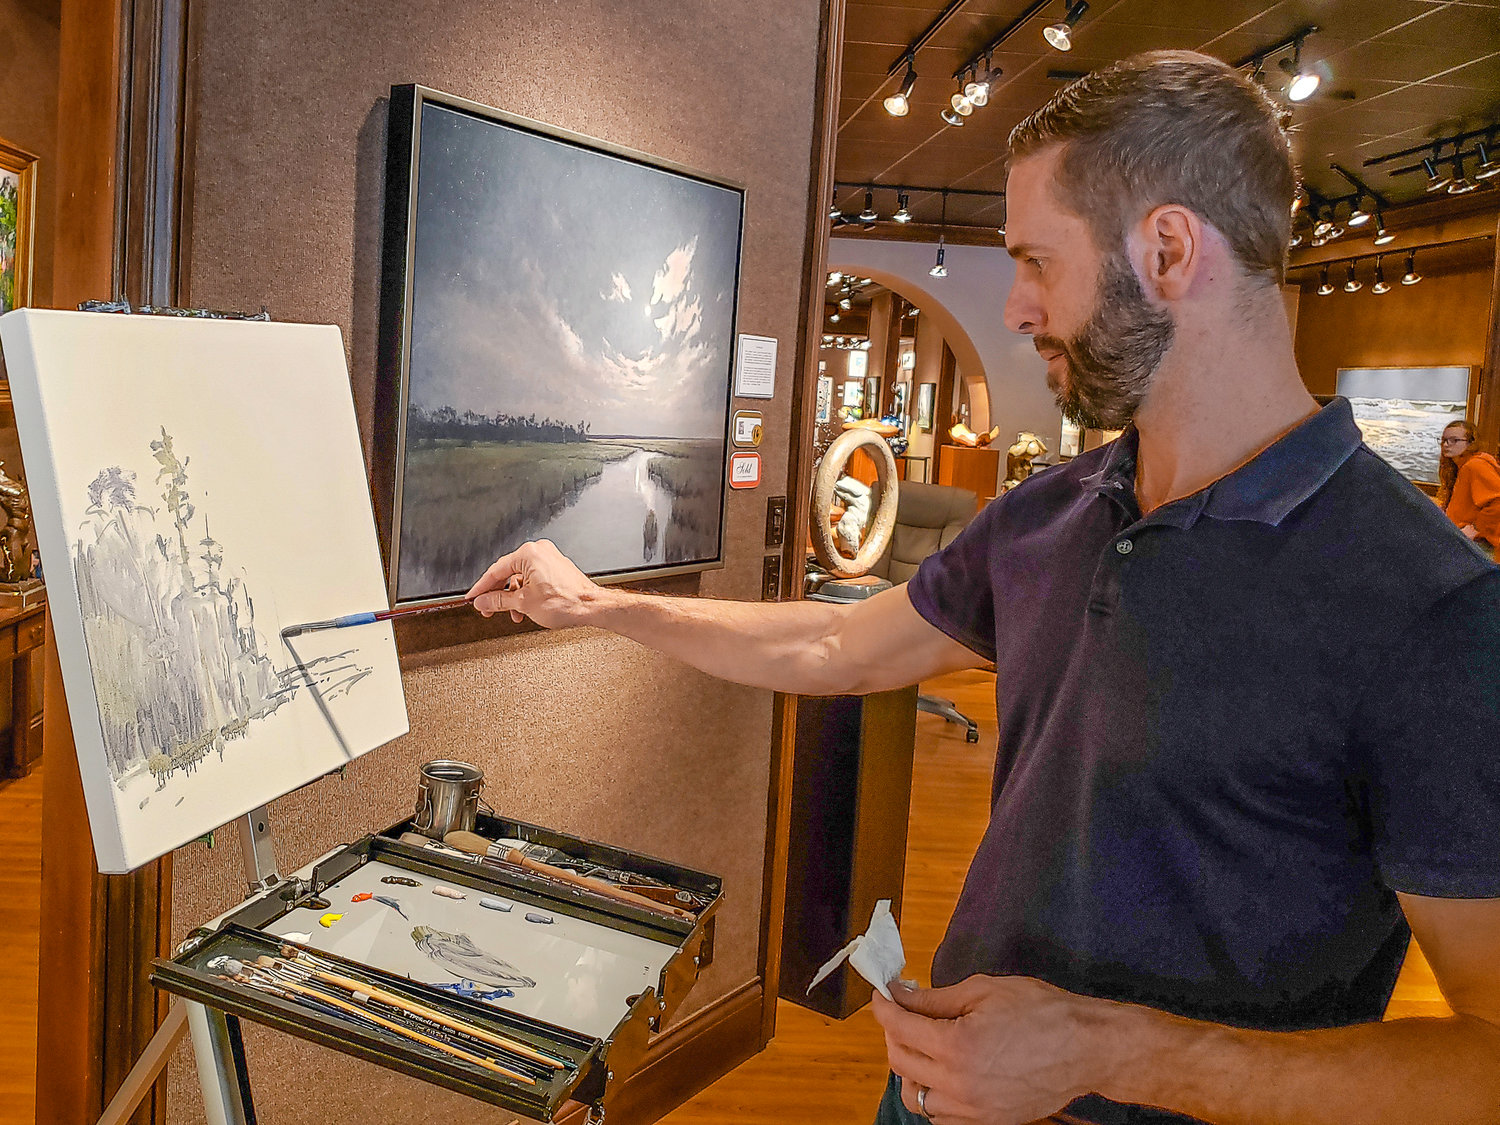 "Artist Matthew Cutter gives a live painting demonstration at Cutter & Cutter Fine Art Gallery in St. Augustine on Dec. 7, 2019. ""It's pretty fun to paint in front of people,"" Cutter said."